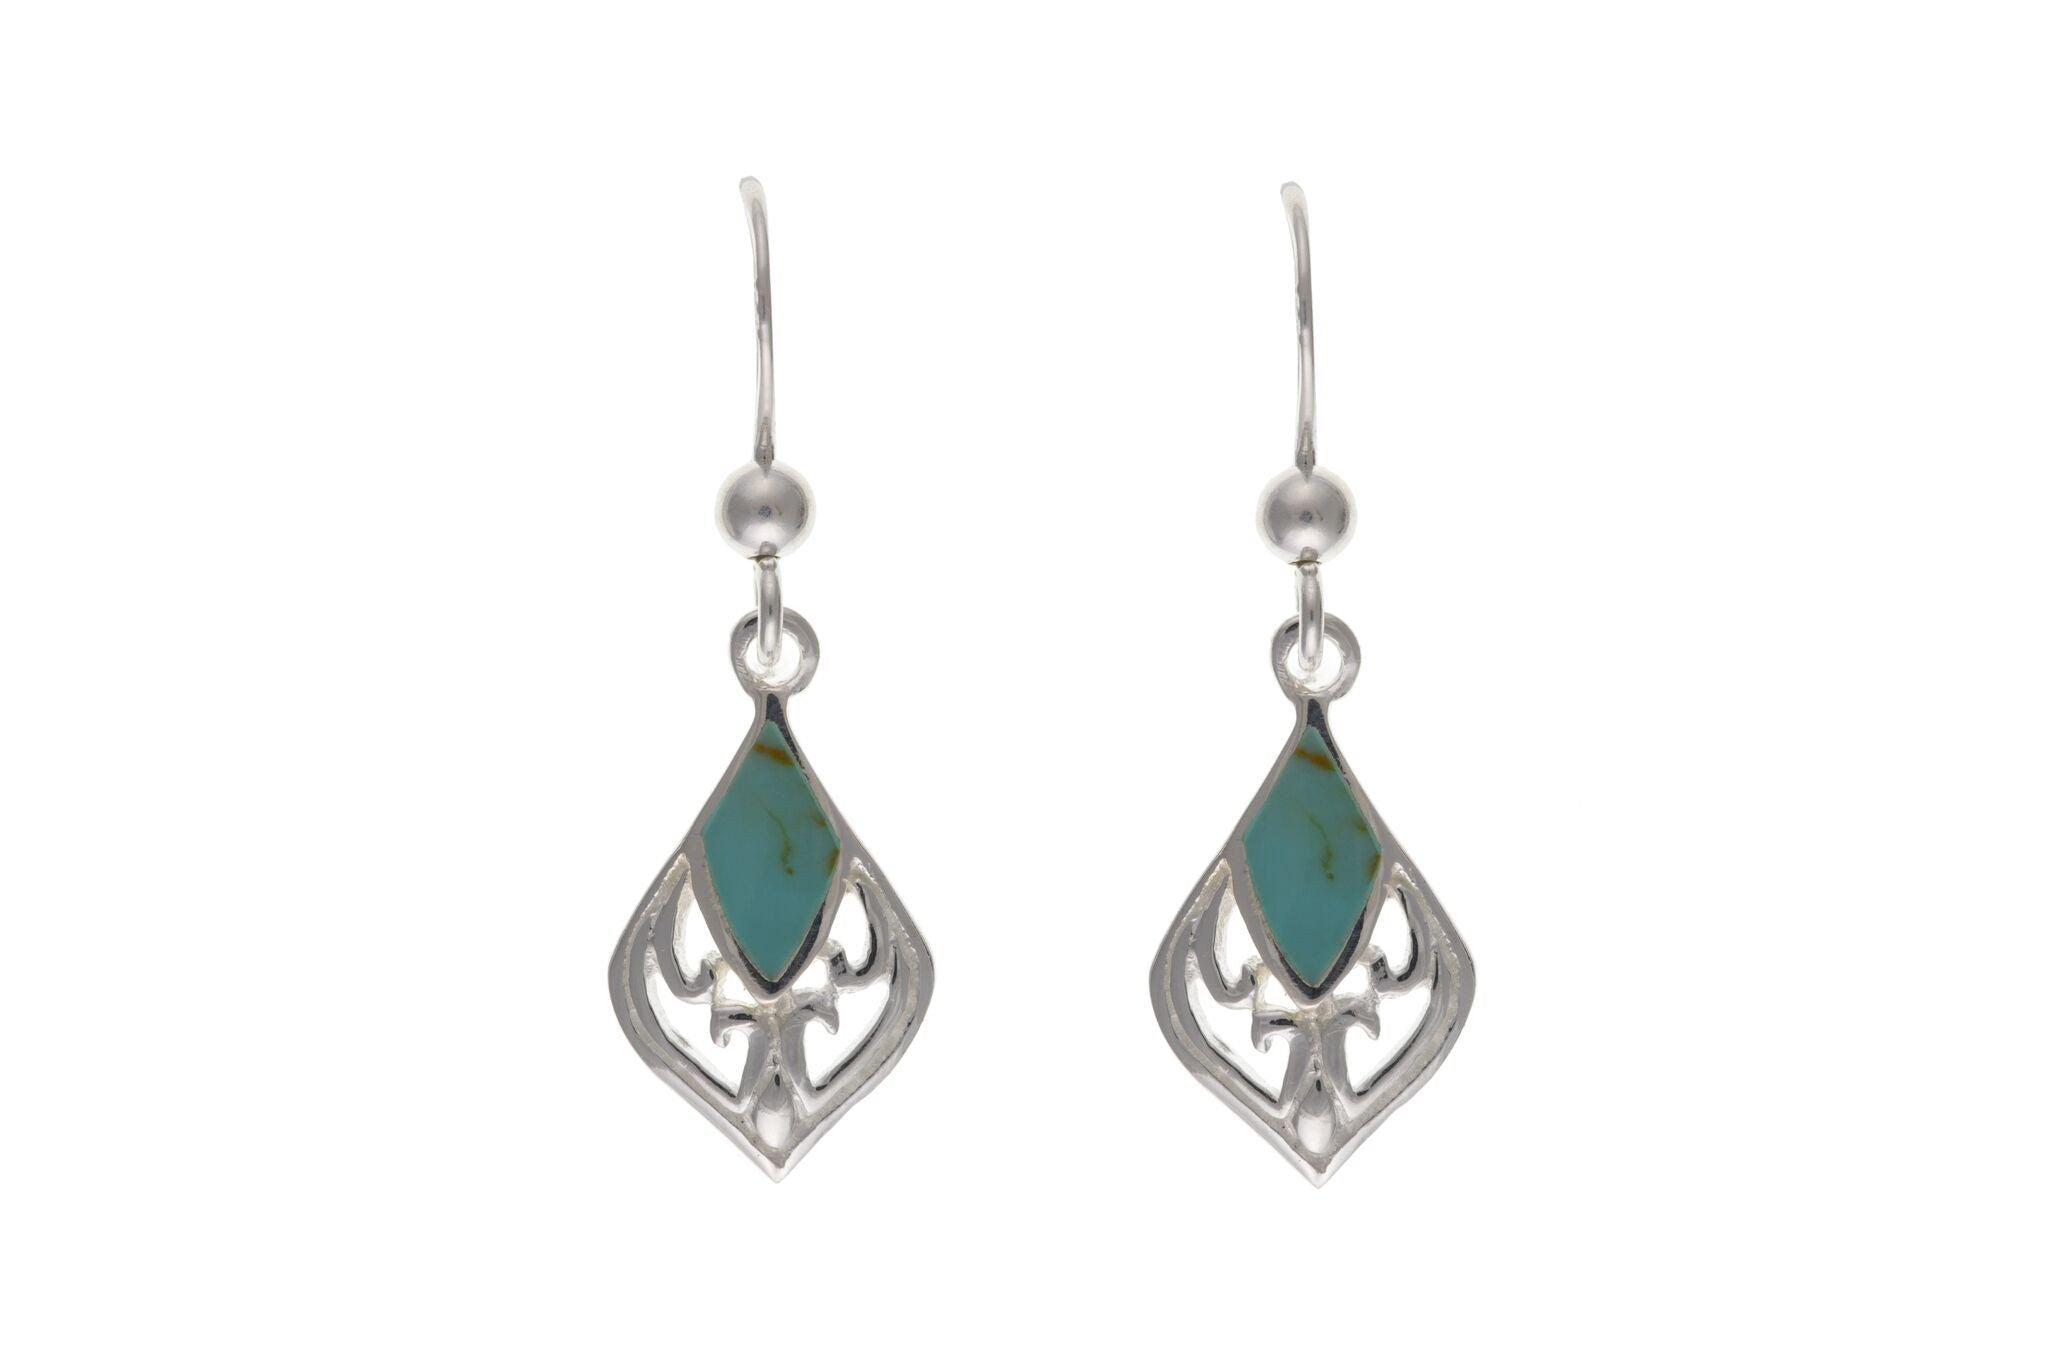 Sterling Silver & Turquoise Drop Earrings SV0283BP - Jay's Jewellery